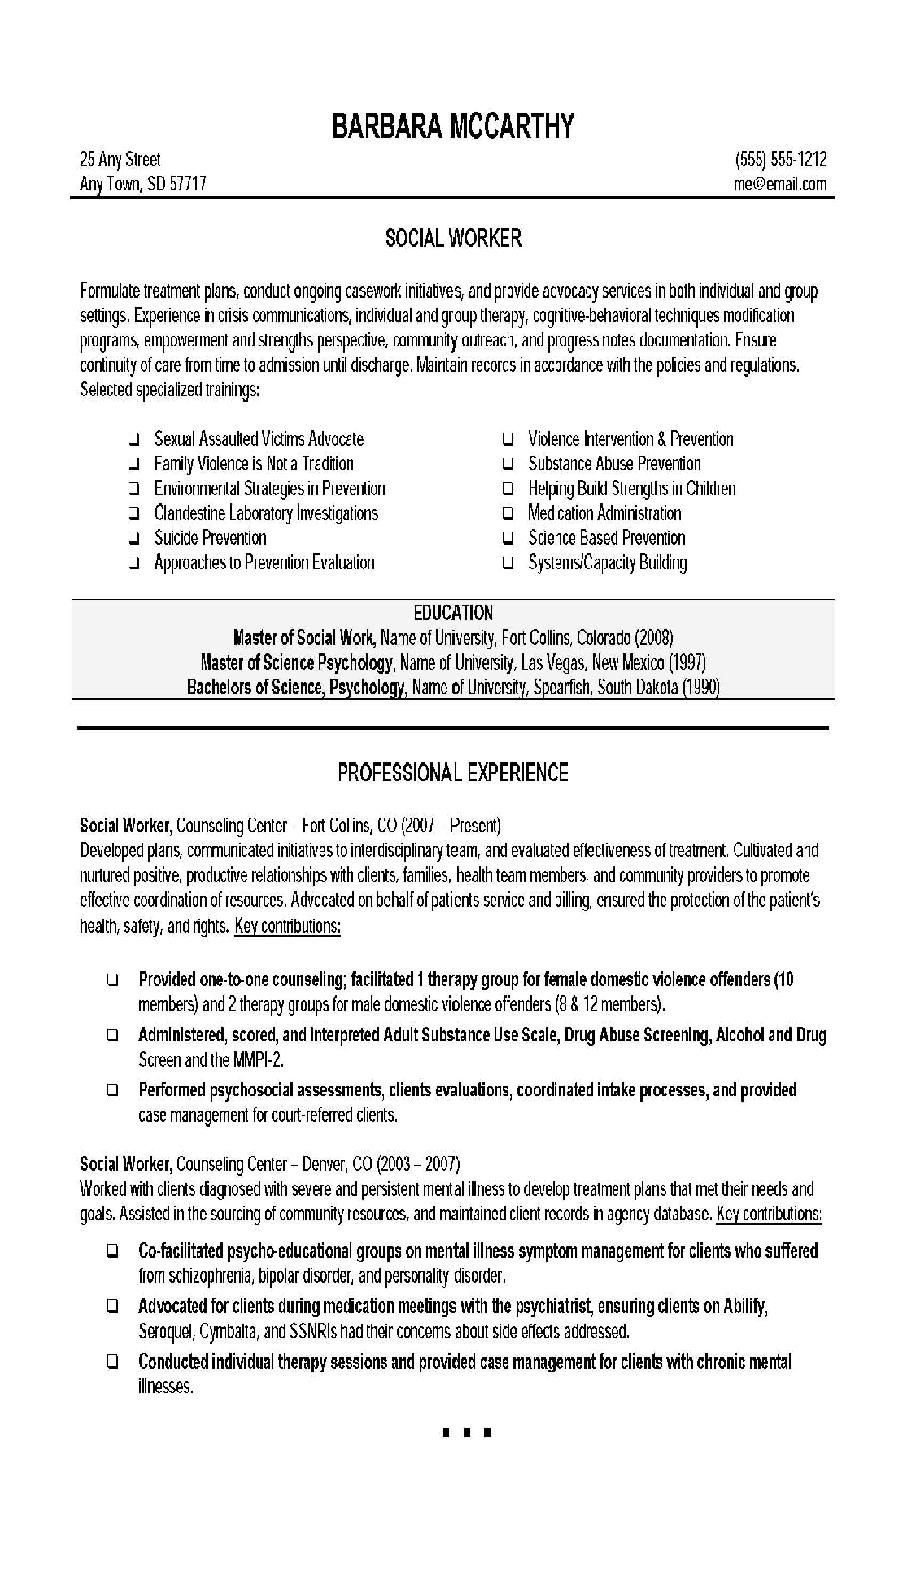 social worker resume 4 Social Work Pinterest – Sample Resume for Mental Health Counselor